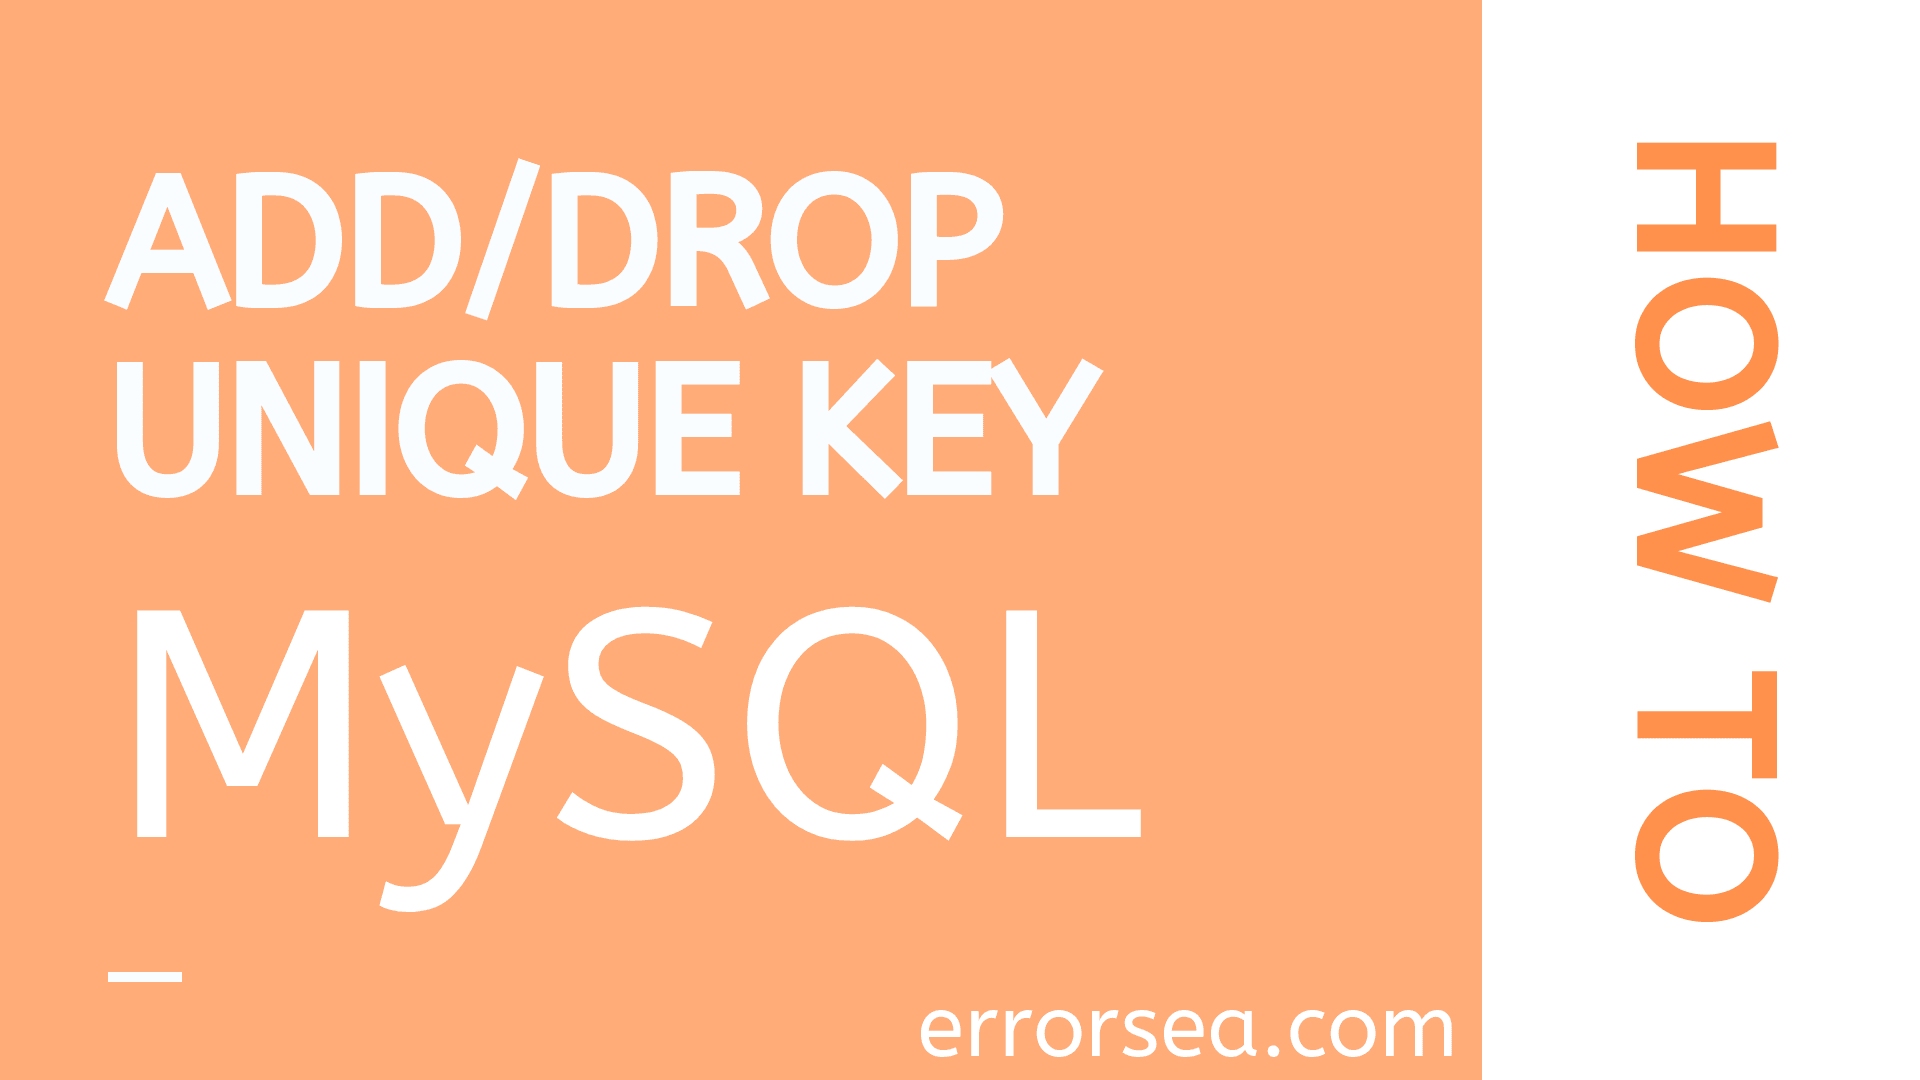 How to Add Drop Unique Key in MySQL